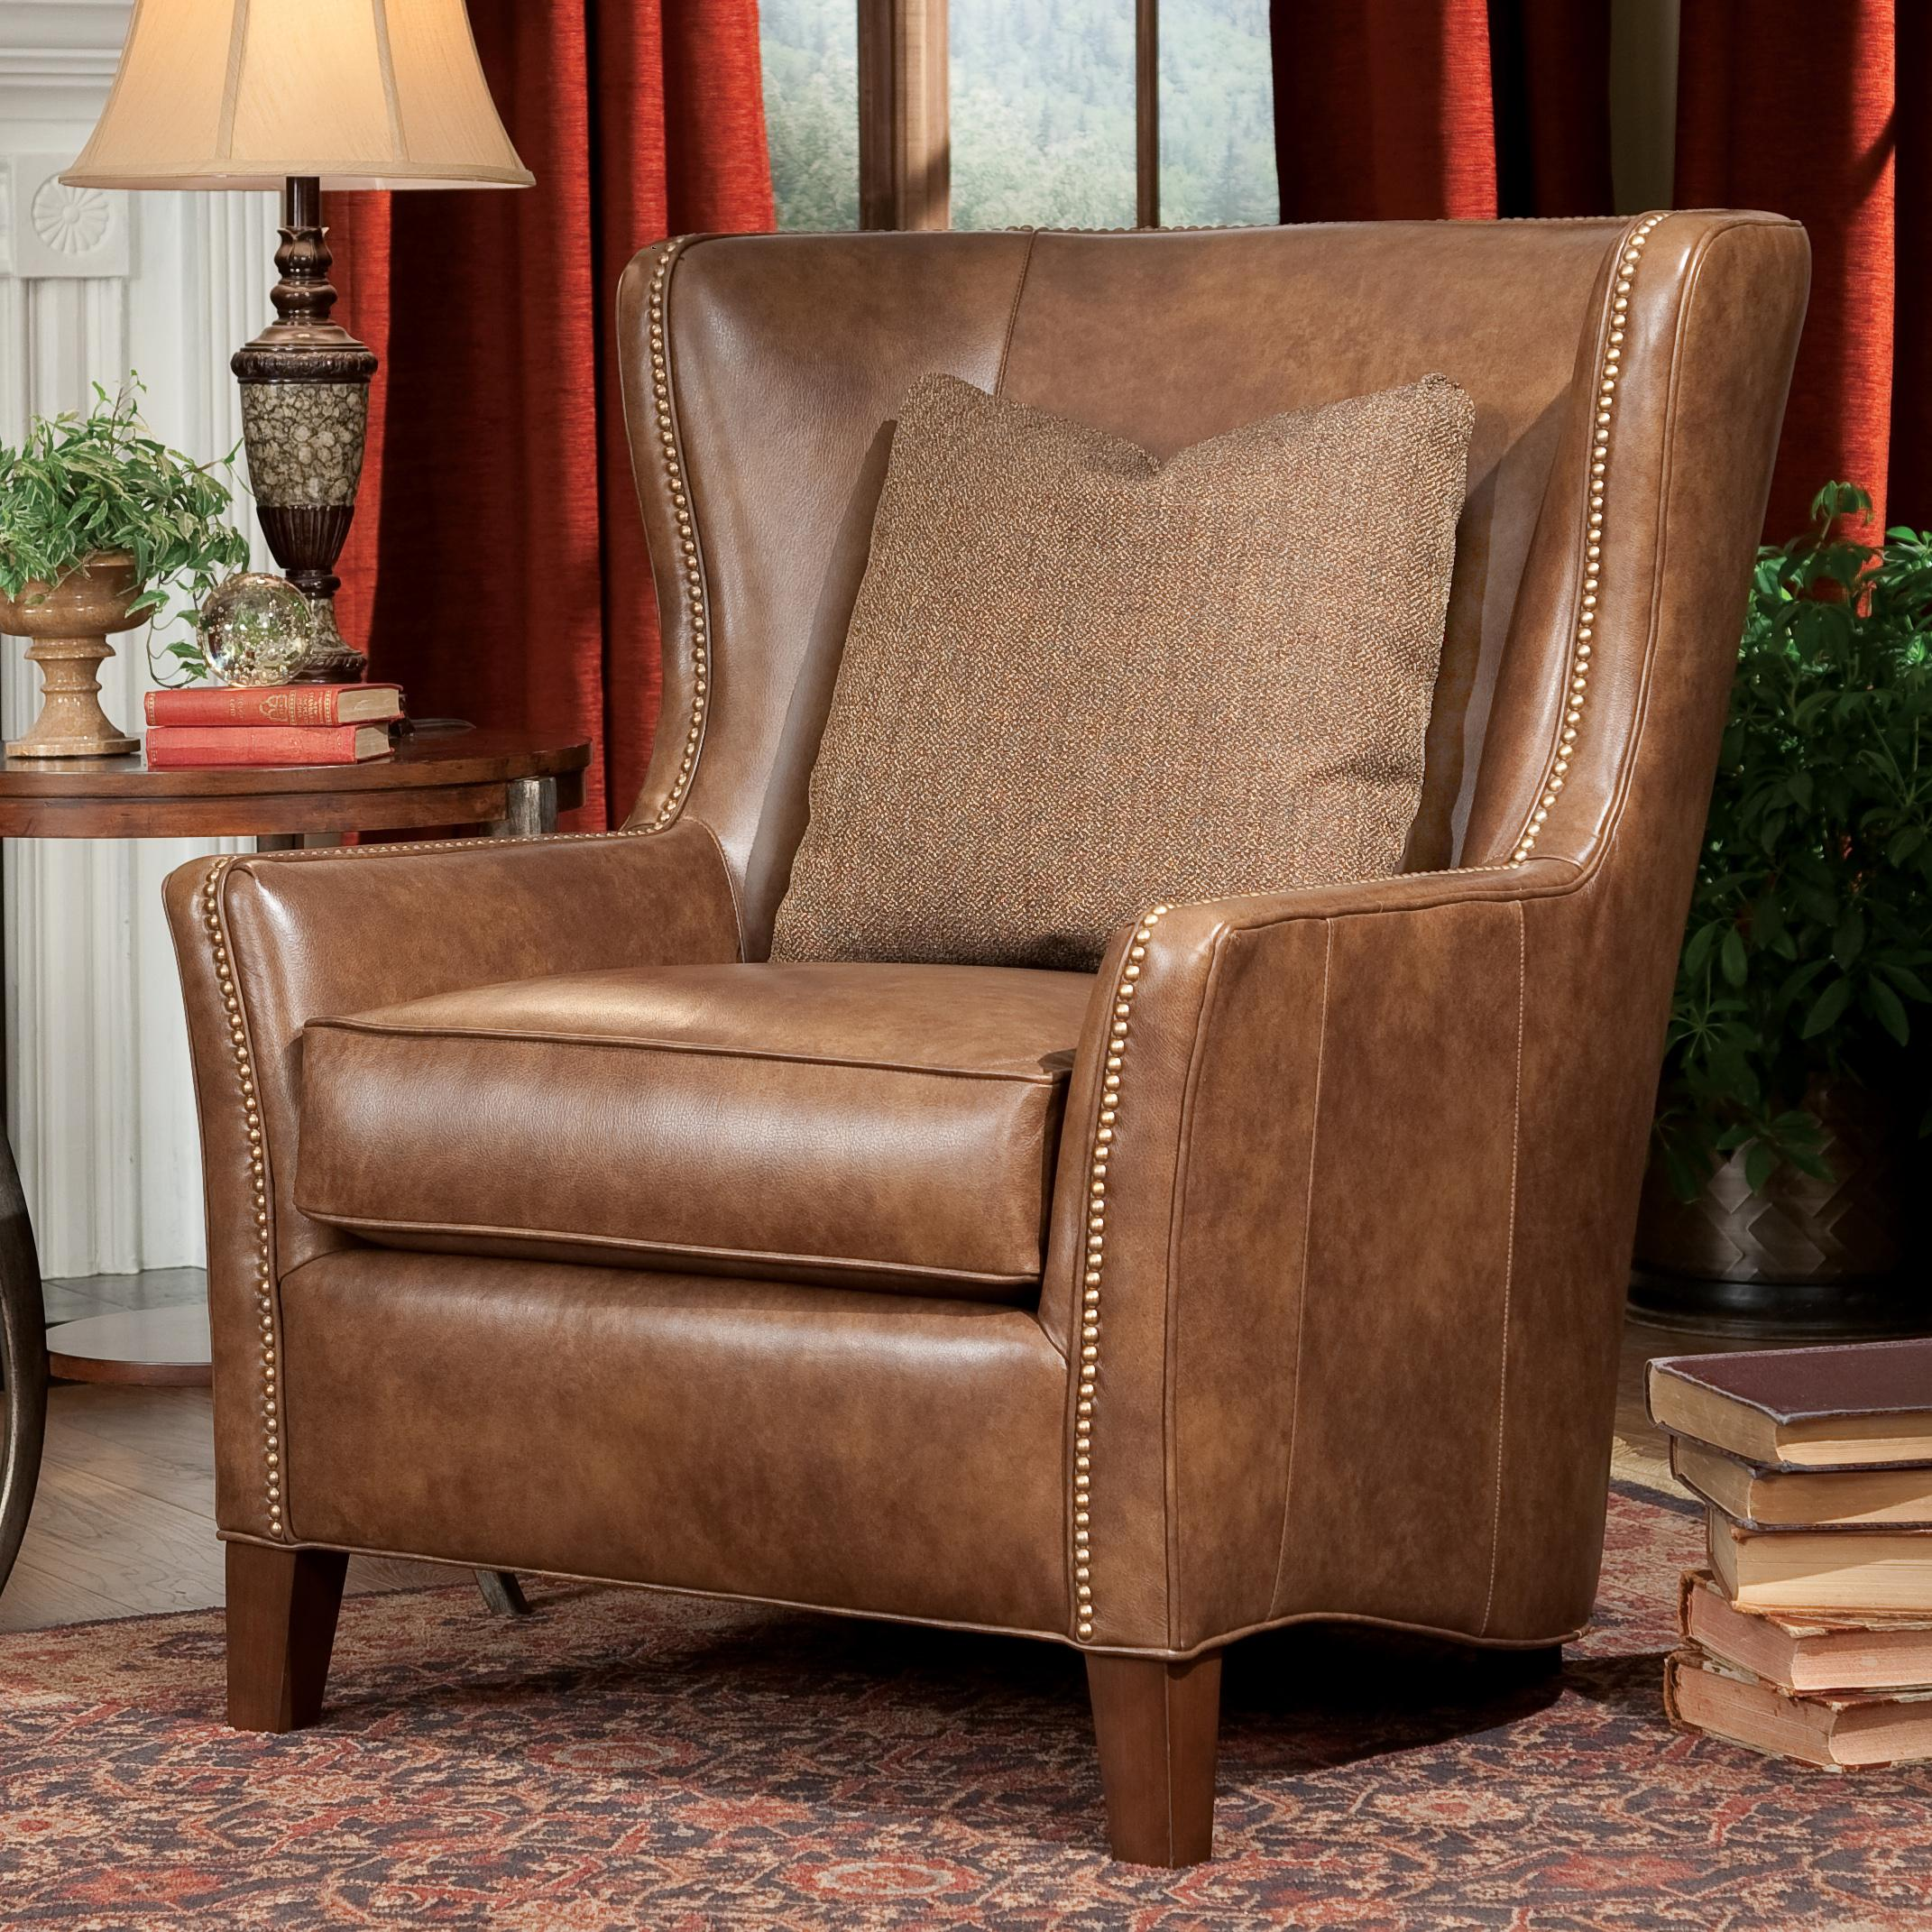 wingback recliners chairs living room furniture. Wingback Chair and Ottoman by Smith Brothers  Wolf Gardiner